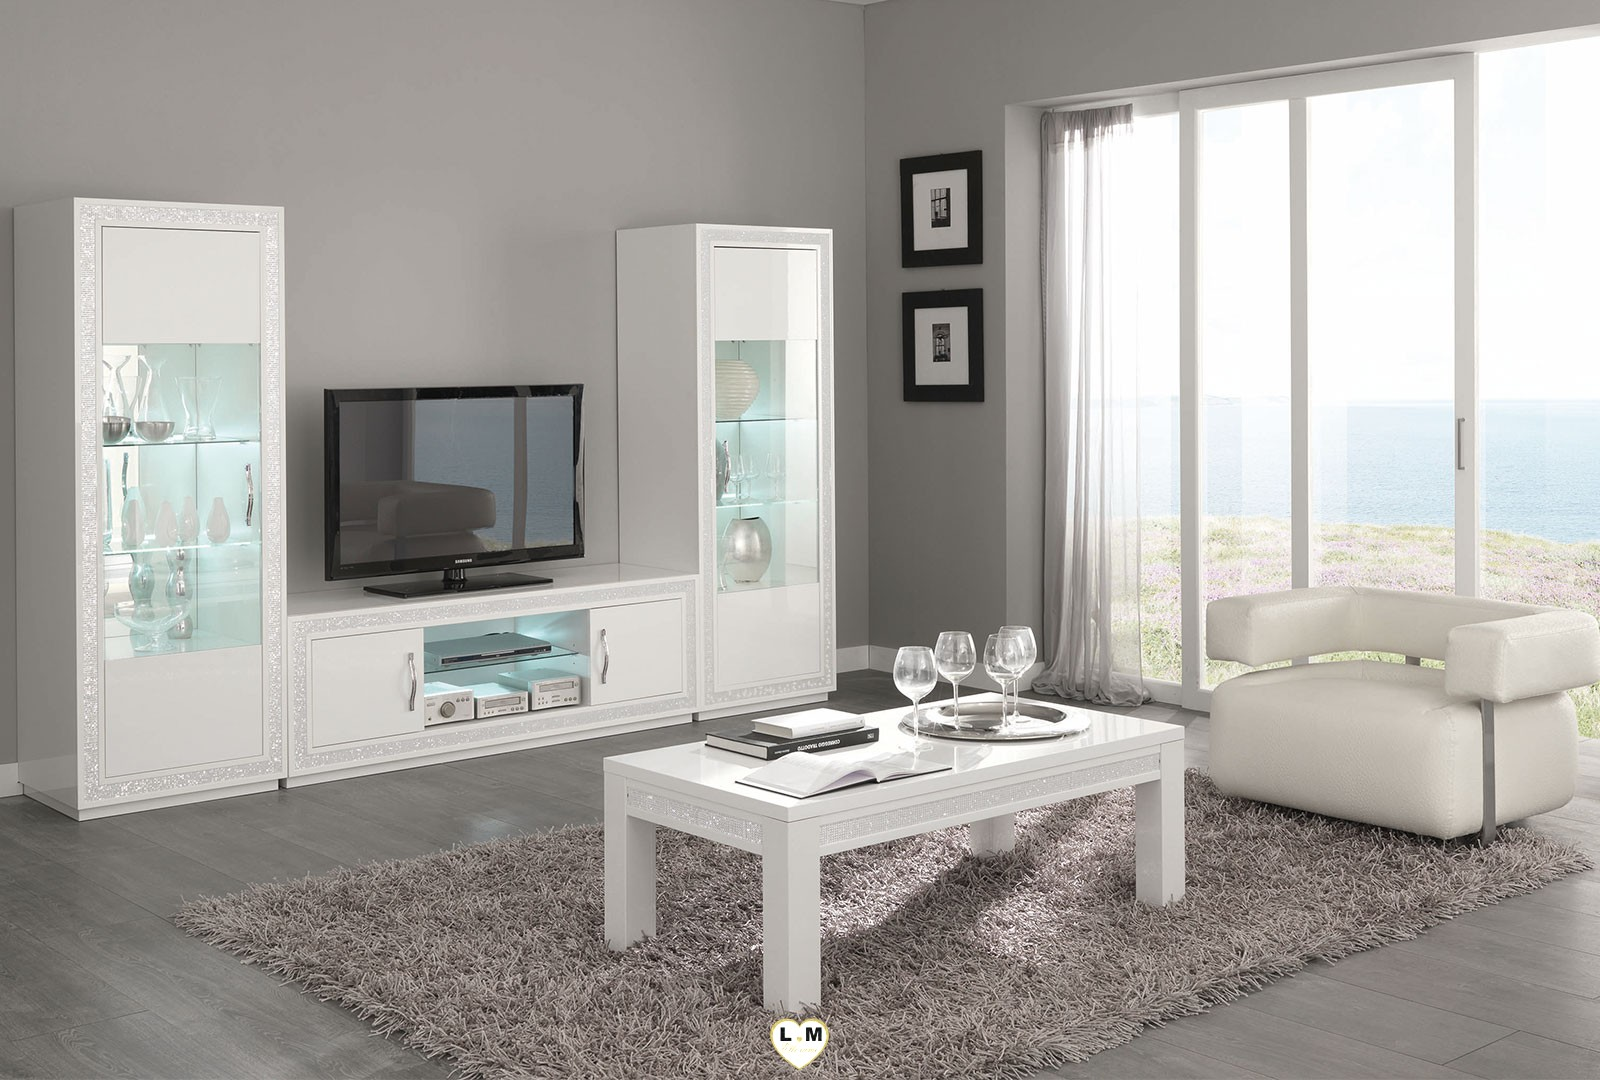 Baccara laque blanc sejour salle a manger design le - Meuble salle a manger blanc laque ...